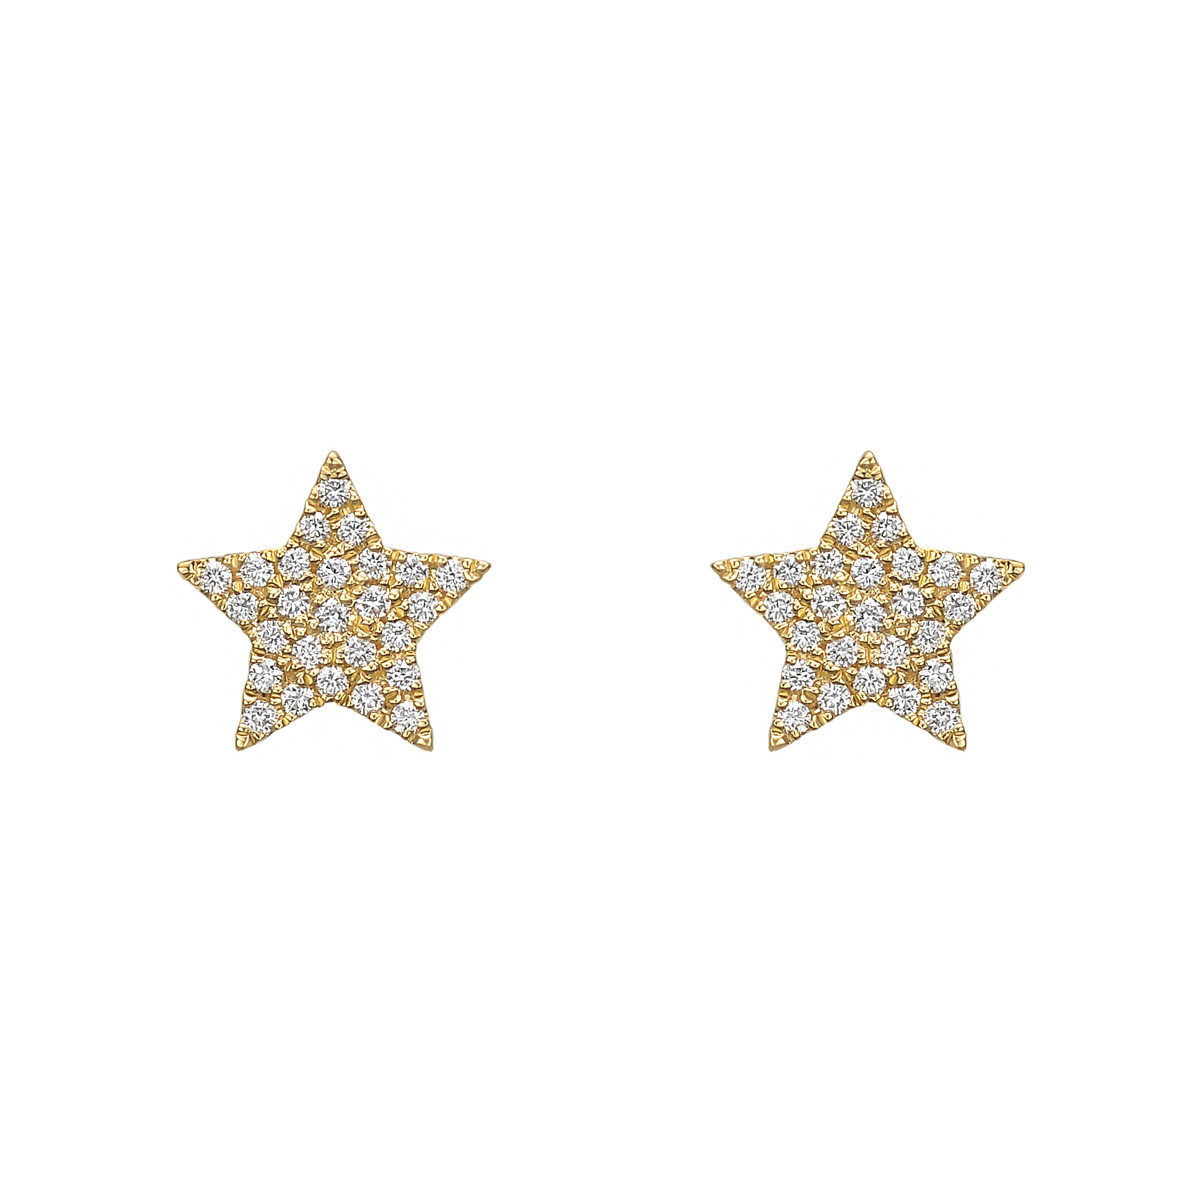 18k Yellow Gold & Pavé Diamond Star Earstuds